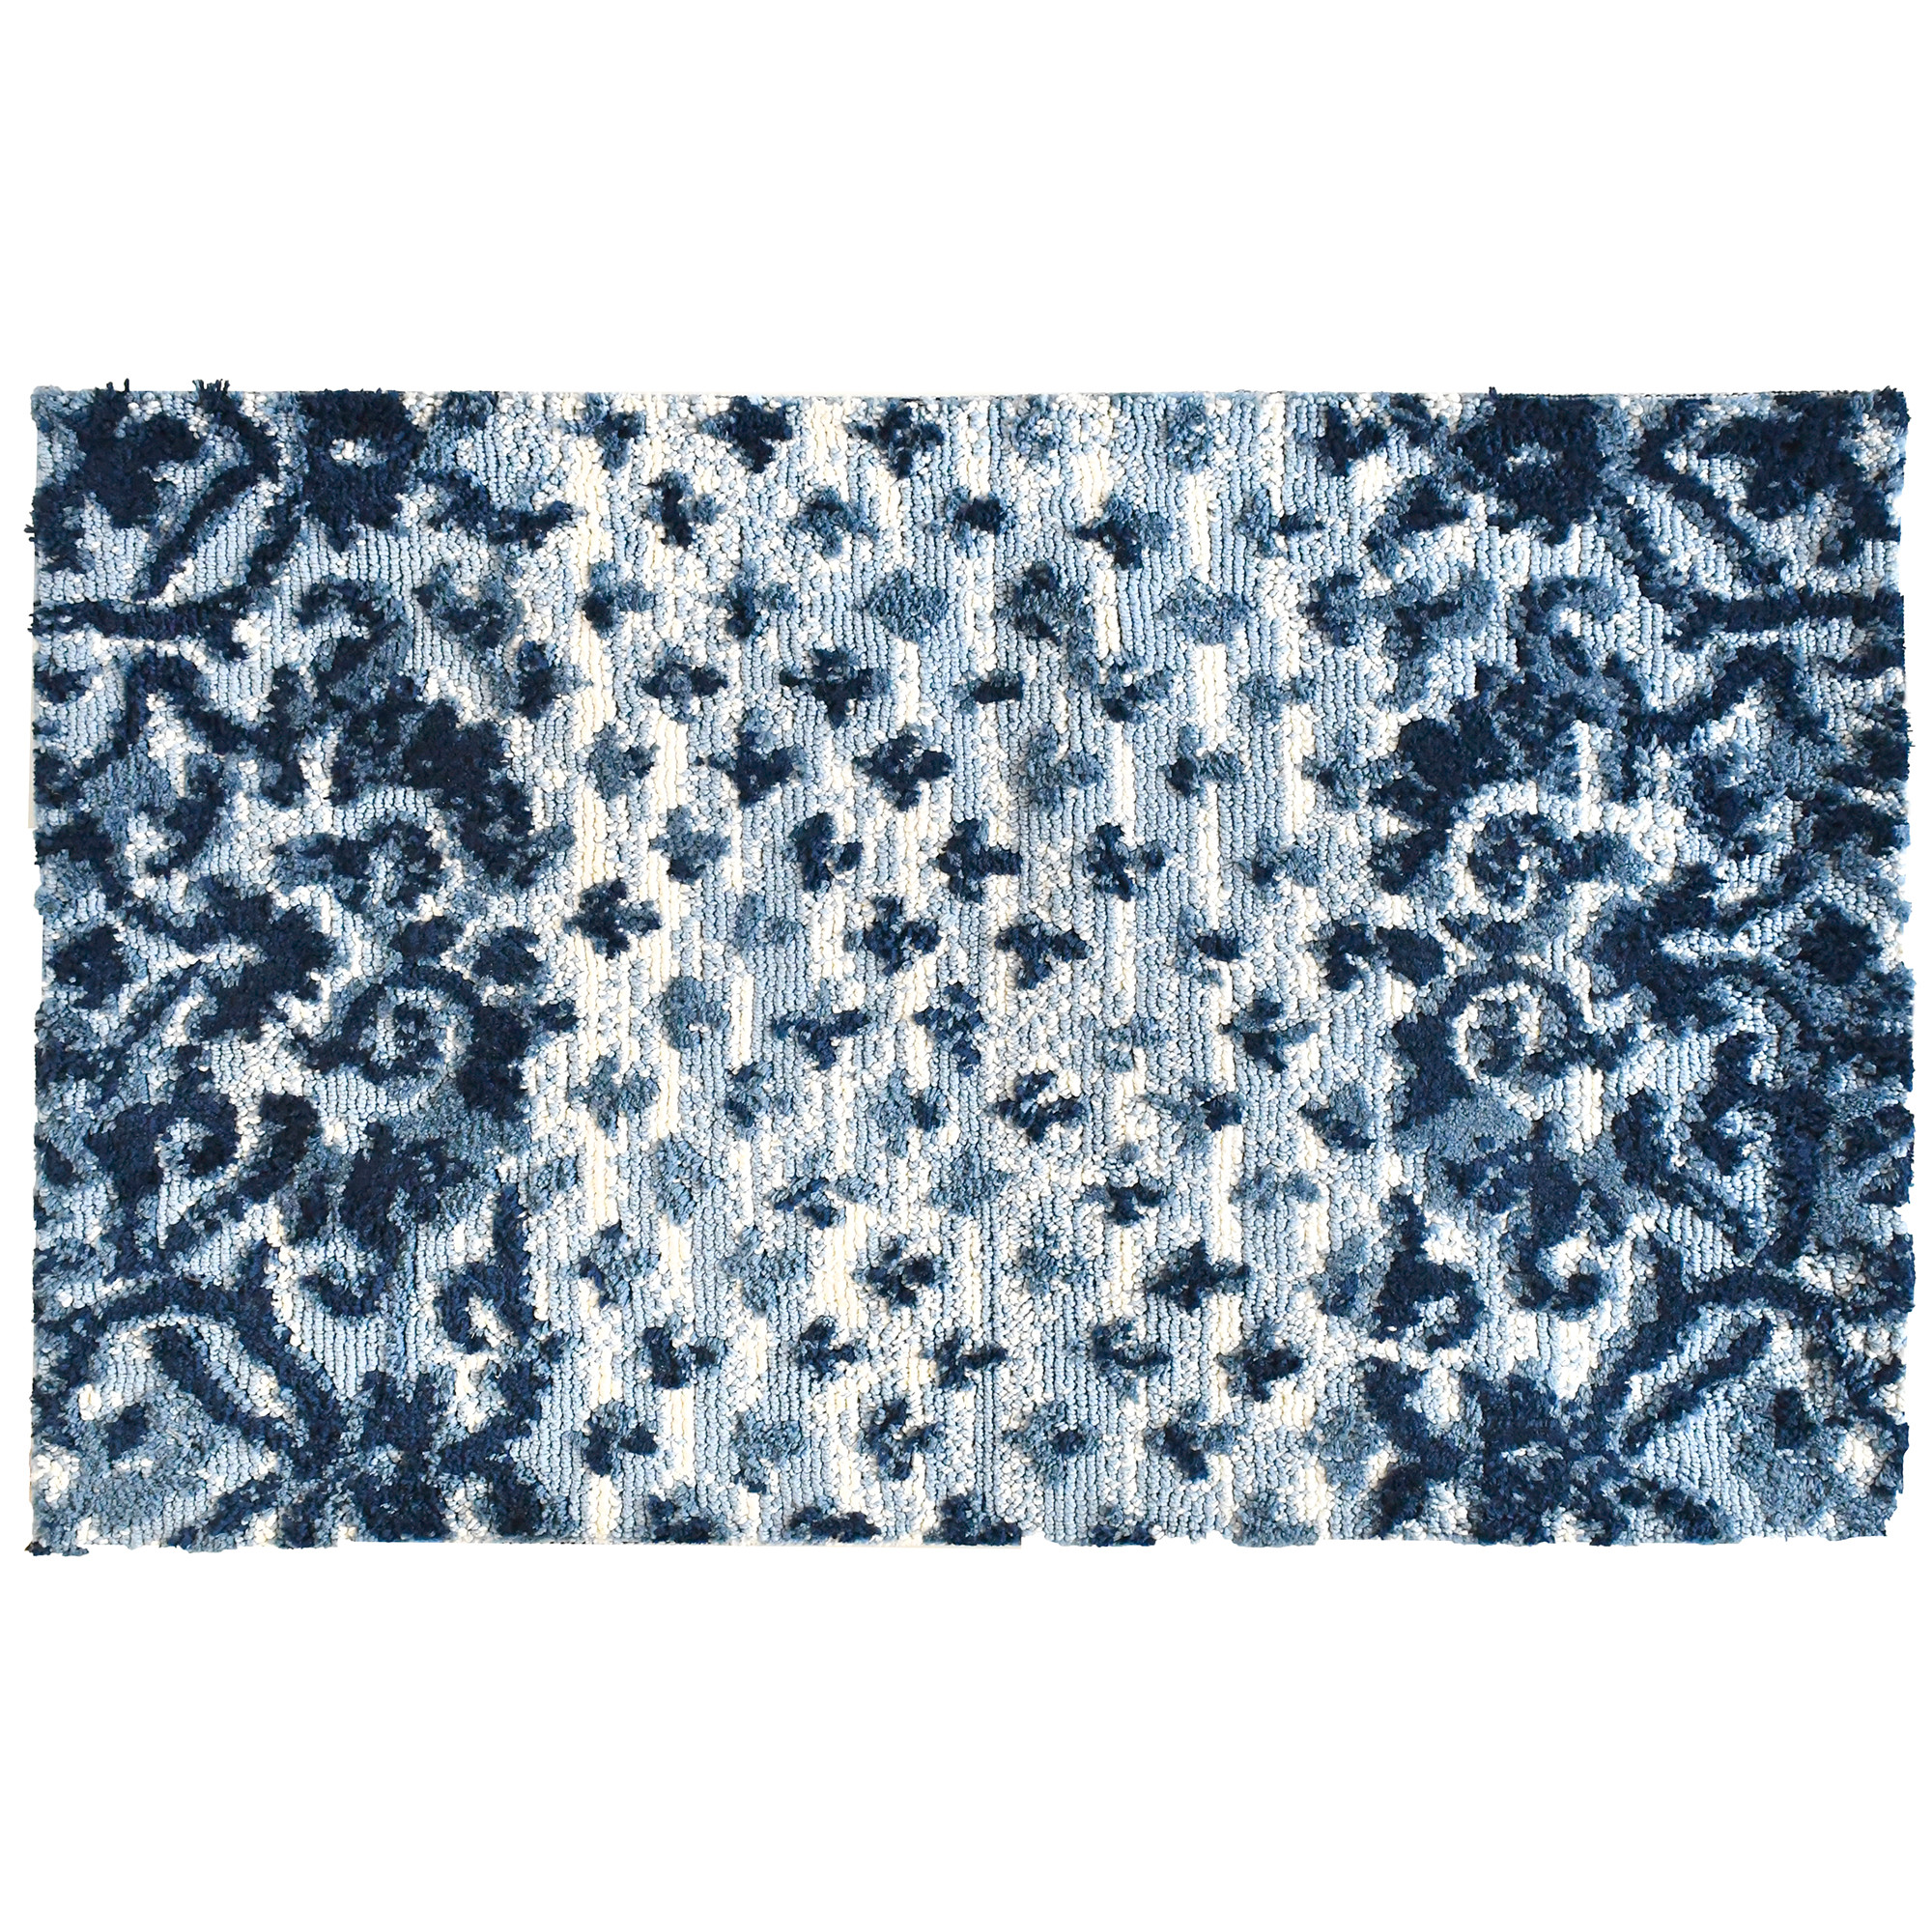 A variety of blues arranged in intricate patterns create a statement on this Simple Spaces by Jellybean® accent rug. Artist June Erica Vessdelivers an area enhancing rug with two sizes available.